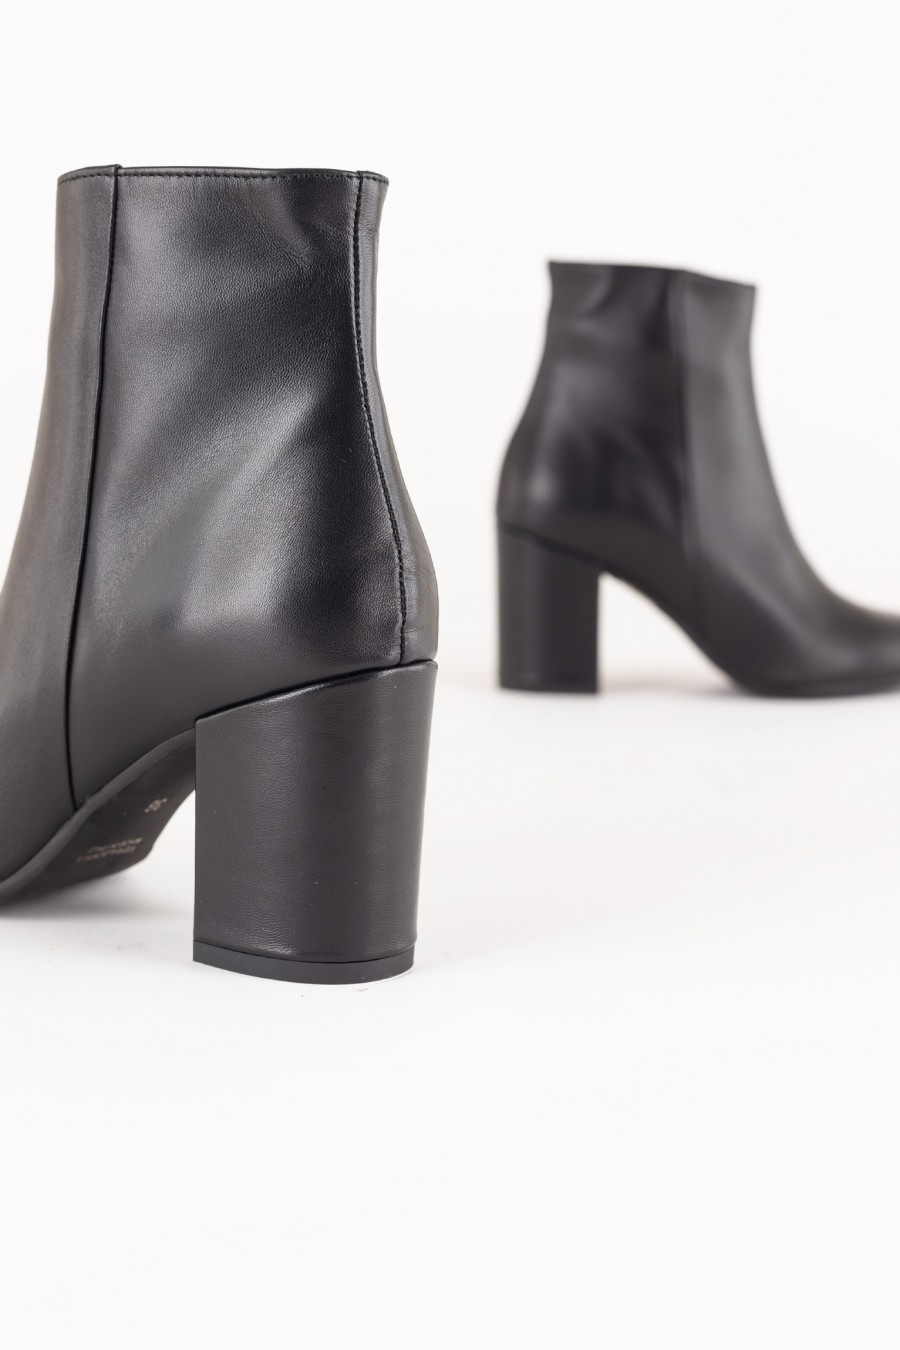 Black boots with side zipper